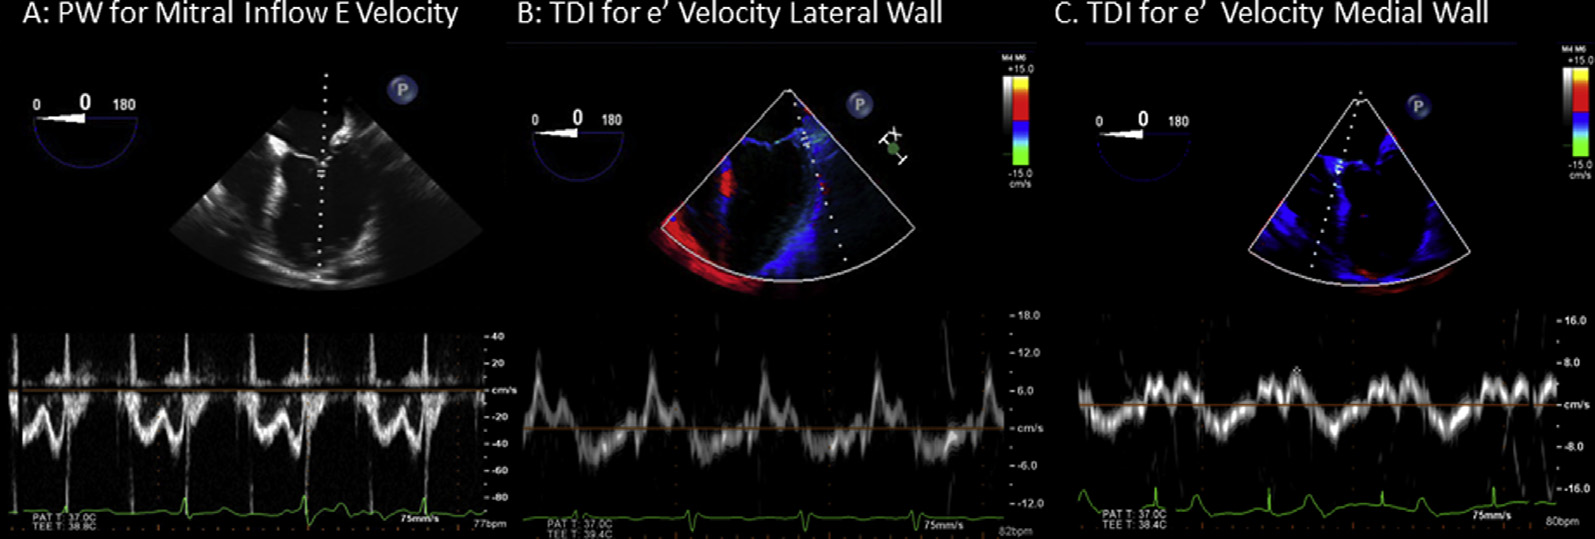 44 Porter et al Journal of the American Society of Echocardiography January 2015 print & web 4C=FPO Figure 2 Transesophageal echocardiographic sampling volume position for monitoring E-, e 0 -, and